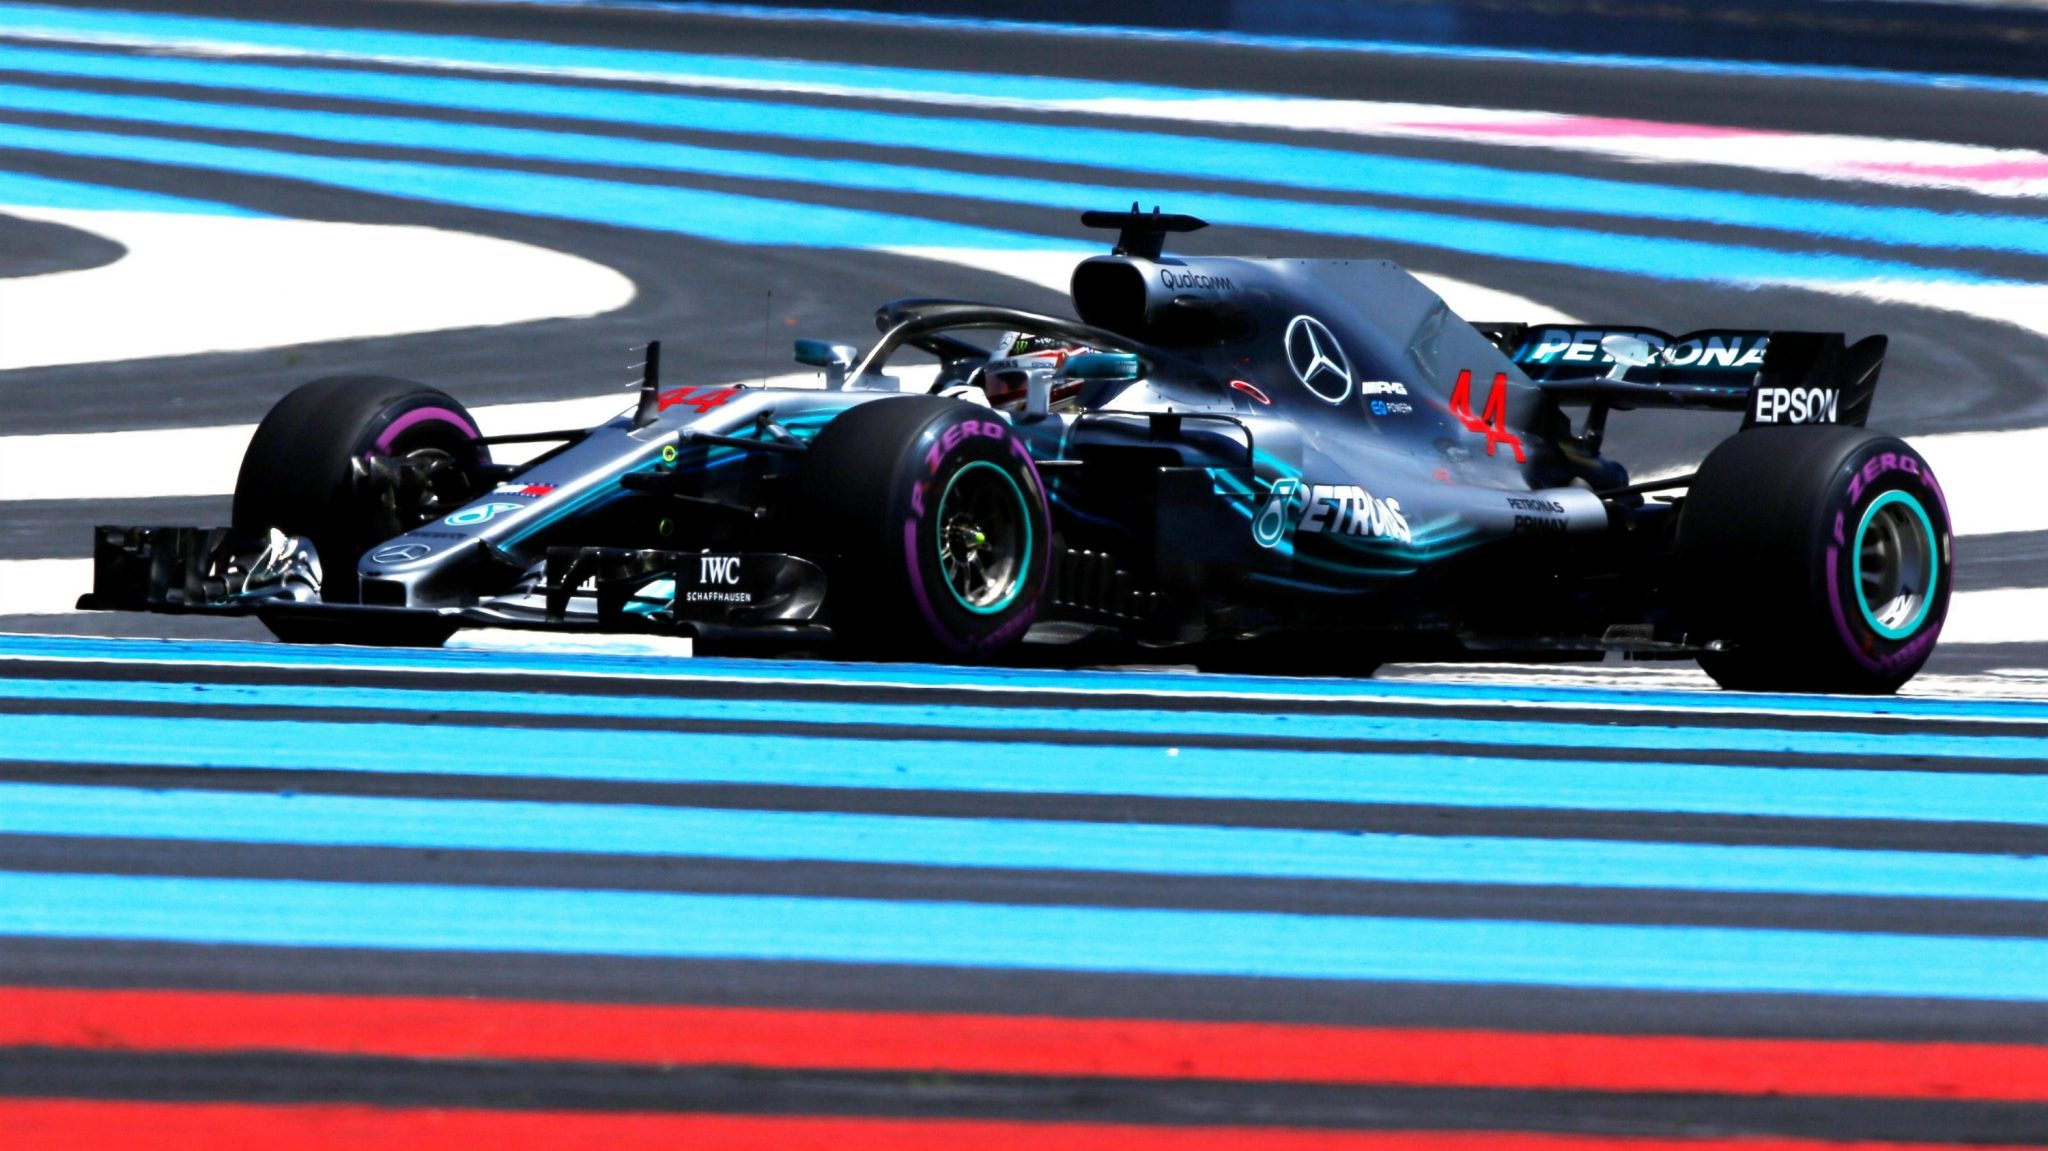 https://www.formula1.com/content/fom-website/en/latest/features/2018/6/gallery--the-best-images-from-france/_jcr_content/featureContent/manual_gallery/image6.img.2048.medium.jpg/1529664287198.jpg